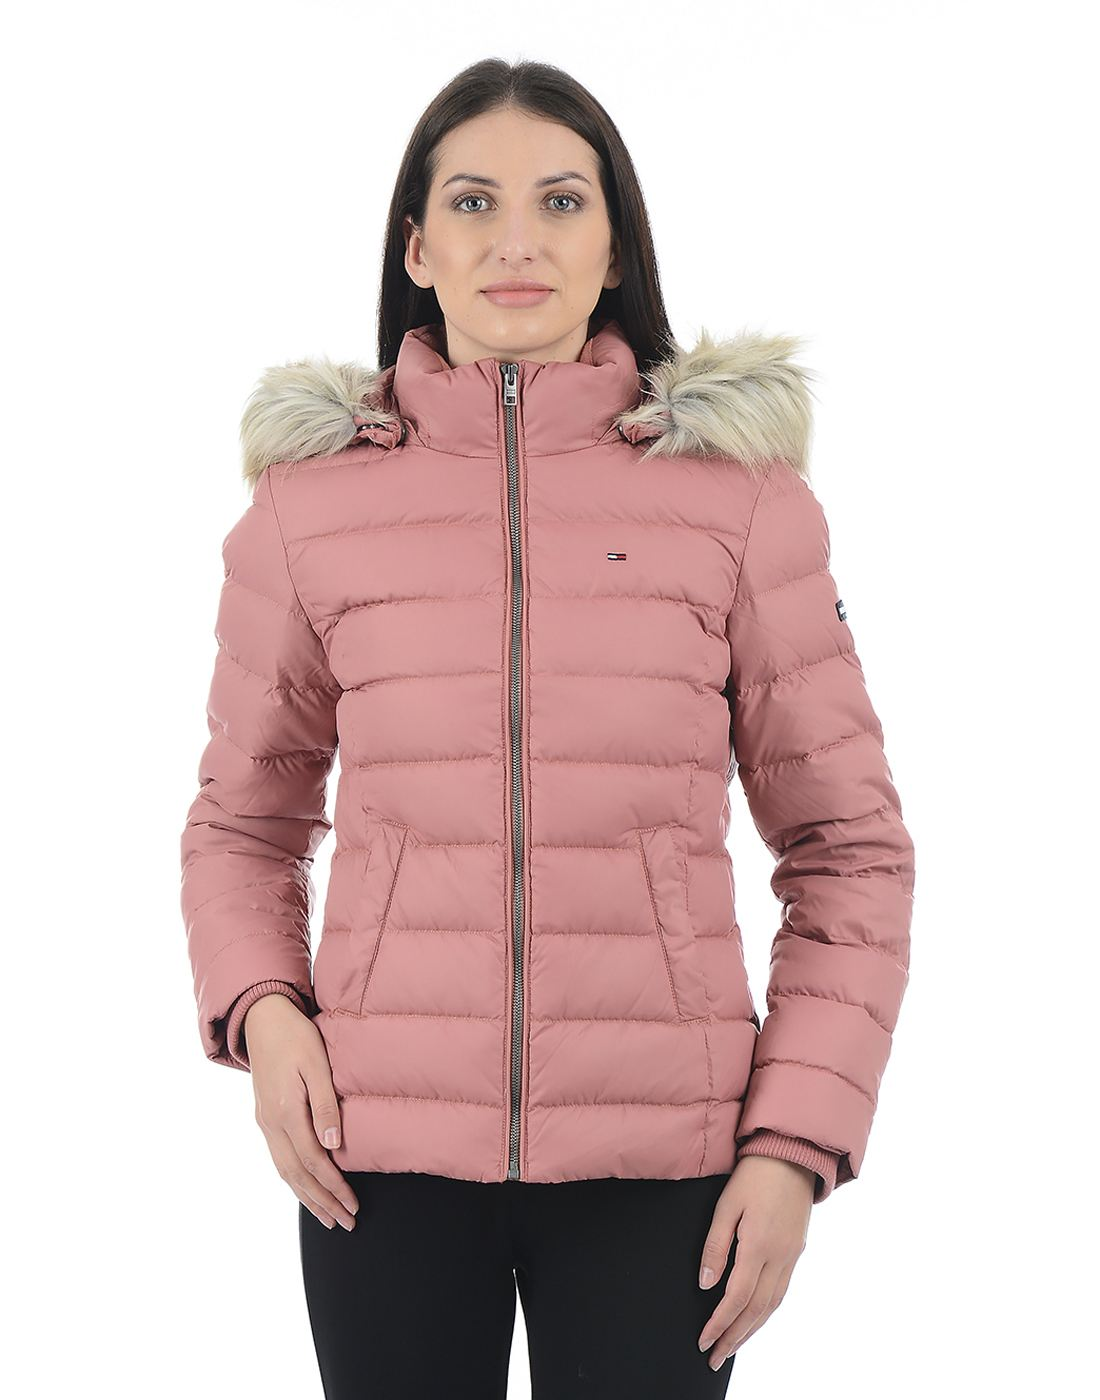 Tommy Hilfiger Women Pink Jacket